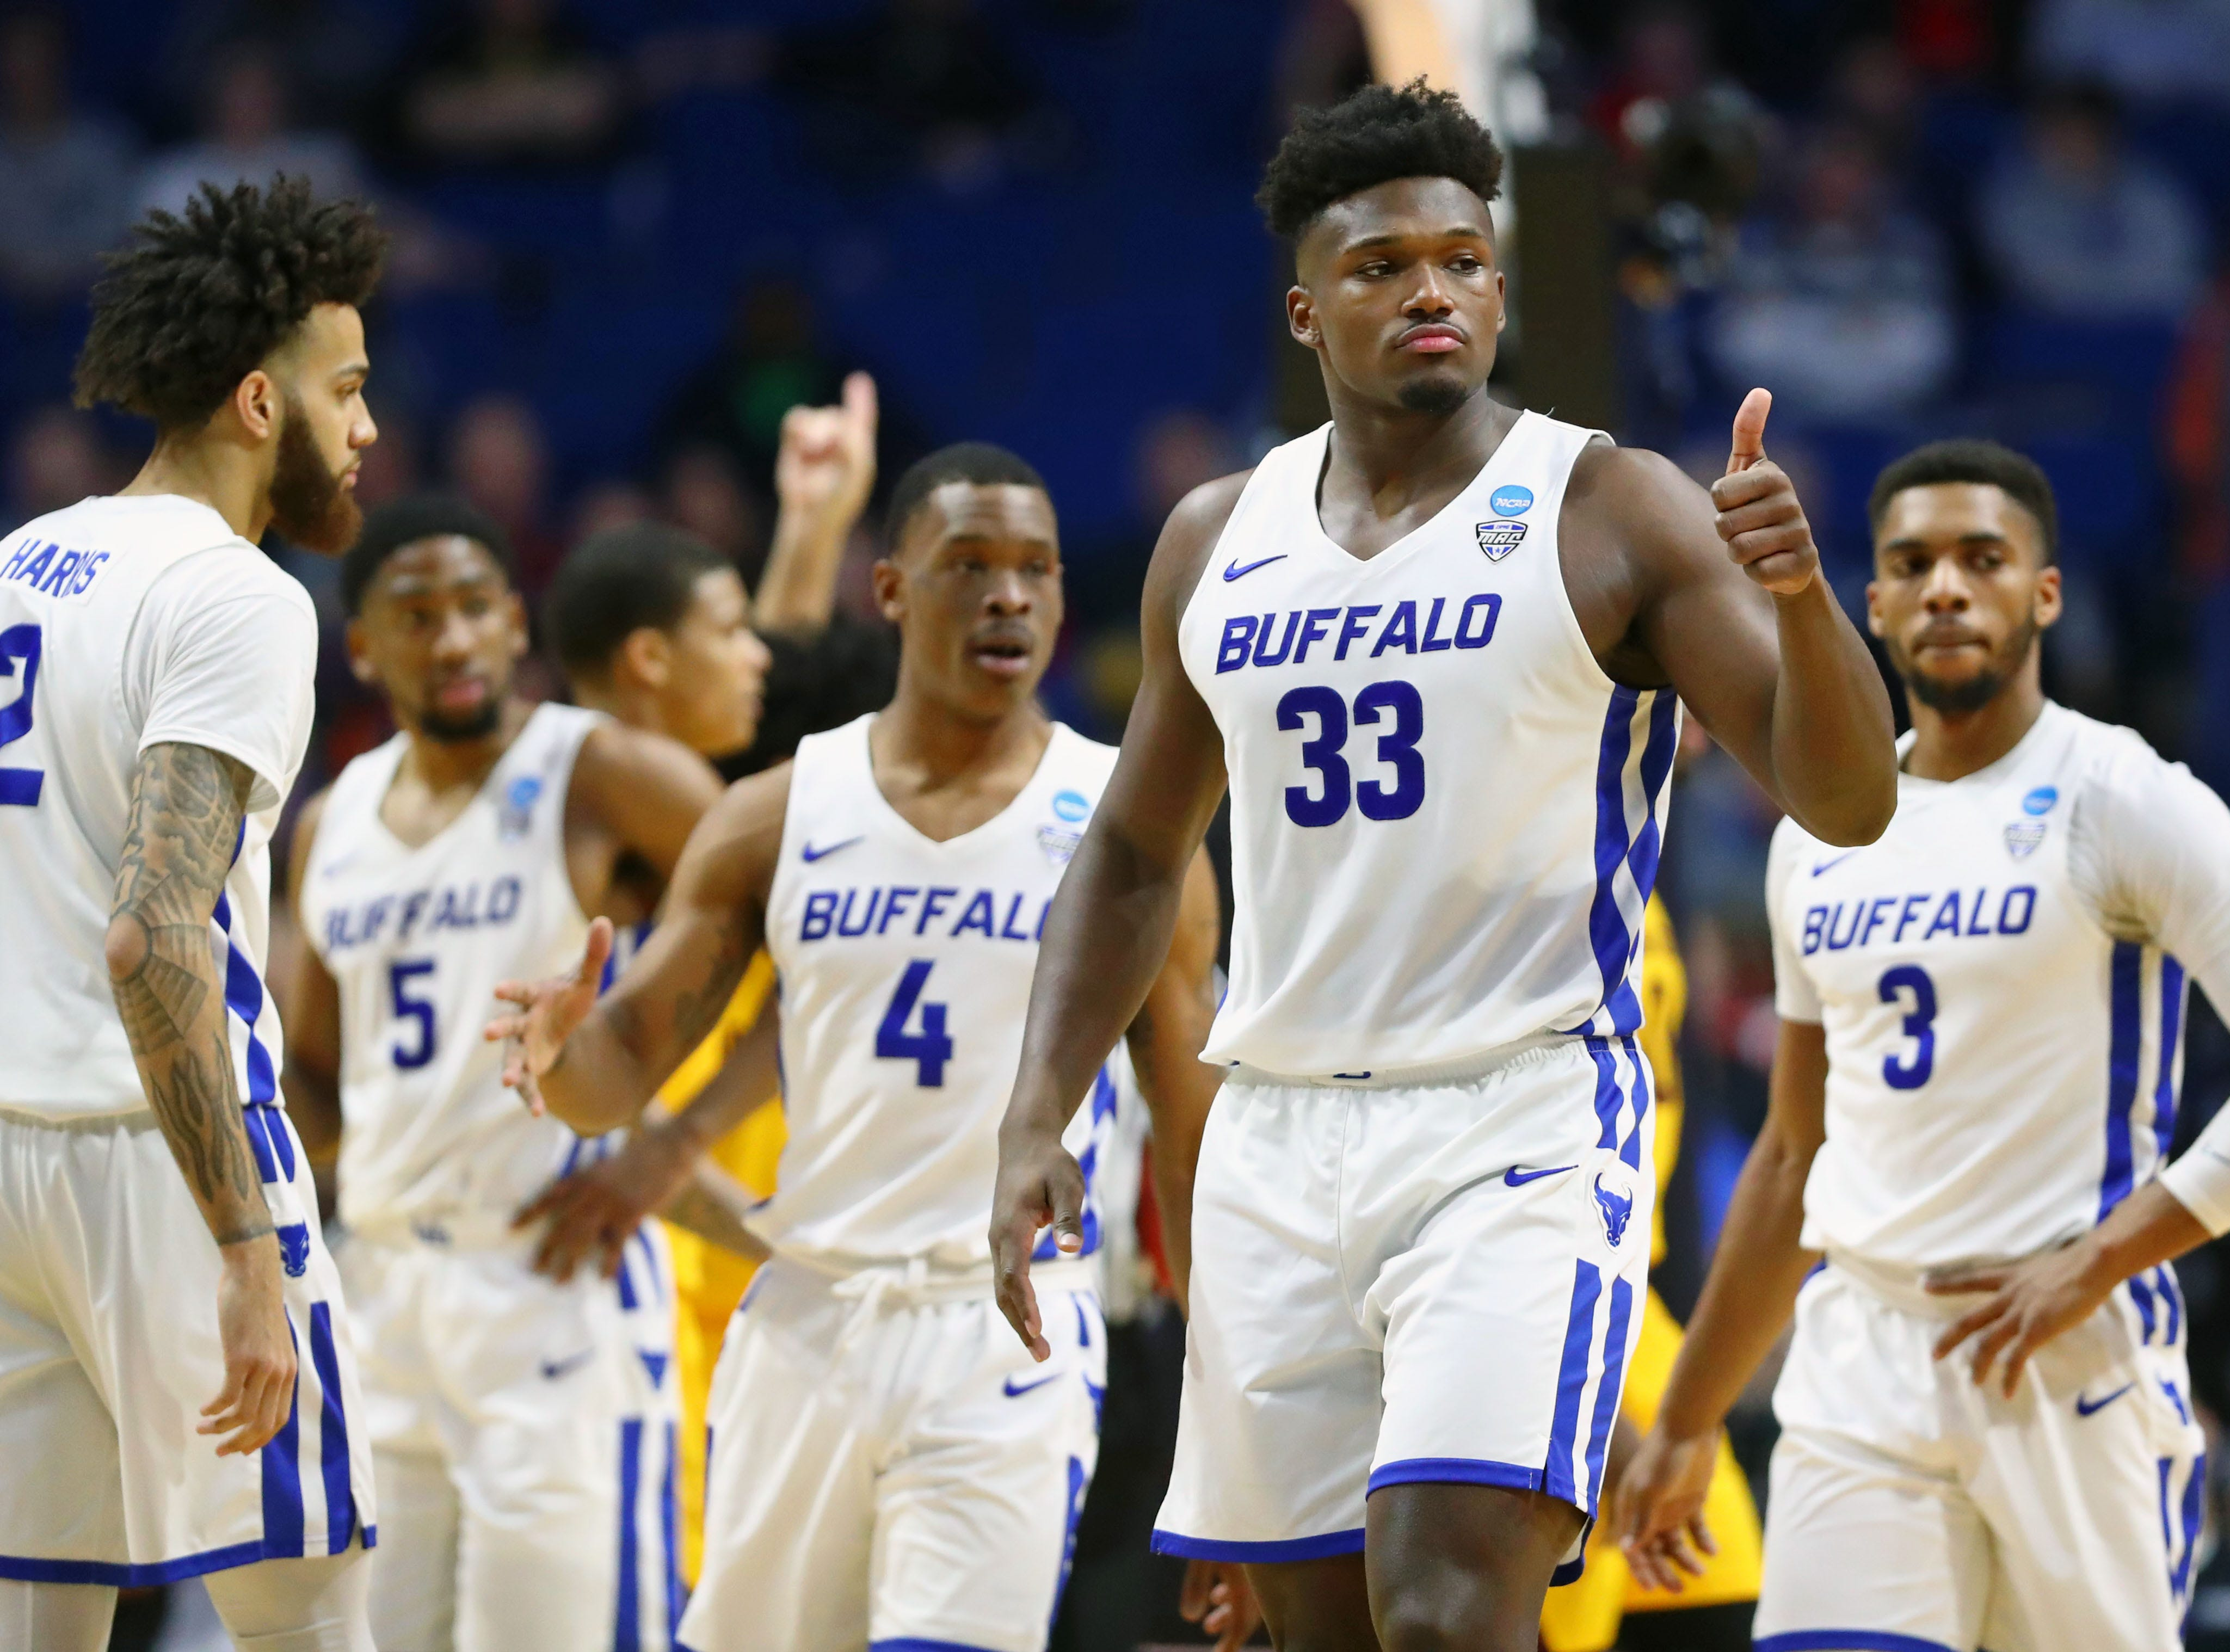 Mar 22, 2019; Tulsa, OK, USA; Buffalo Bulls forward Nick Perkins (33) gives a thumbs up after a play against the Arizona State Sun Devils during the first half in the first round of the 2019 NCAA Tournament at BOK Center. Mandatory Credit: Mark J. Rebilas-USA TODAY Sports